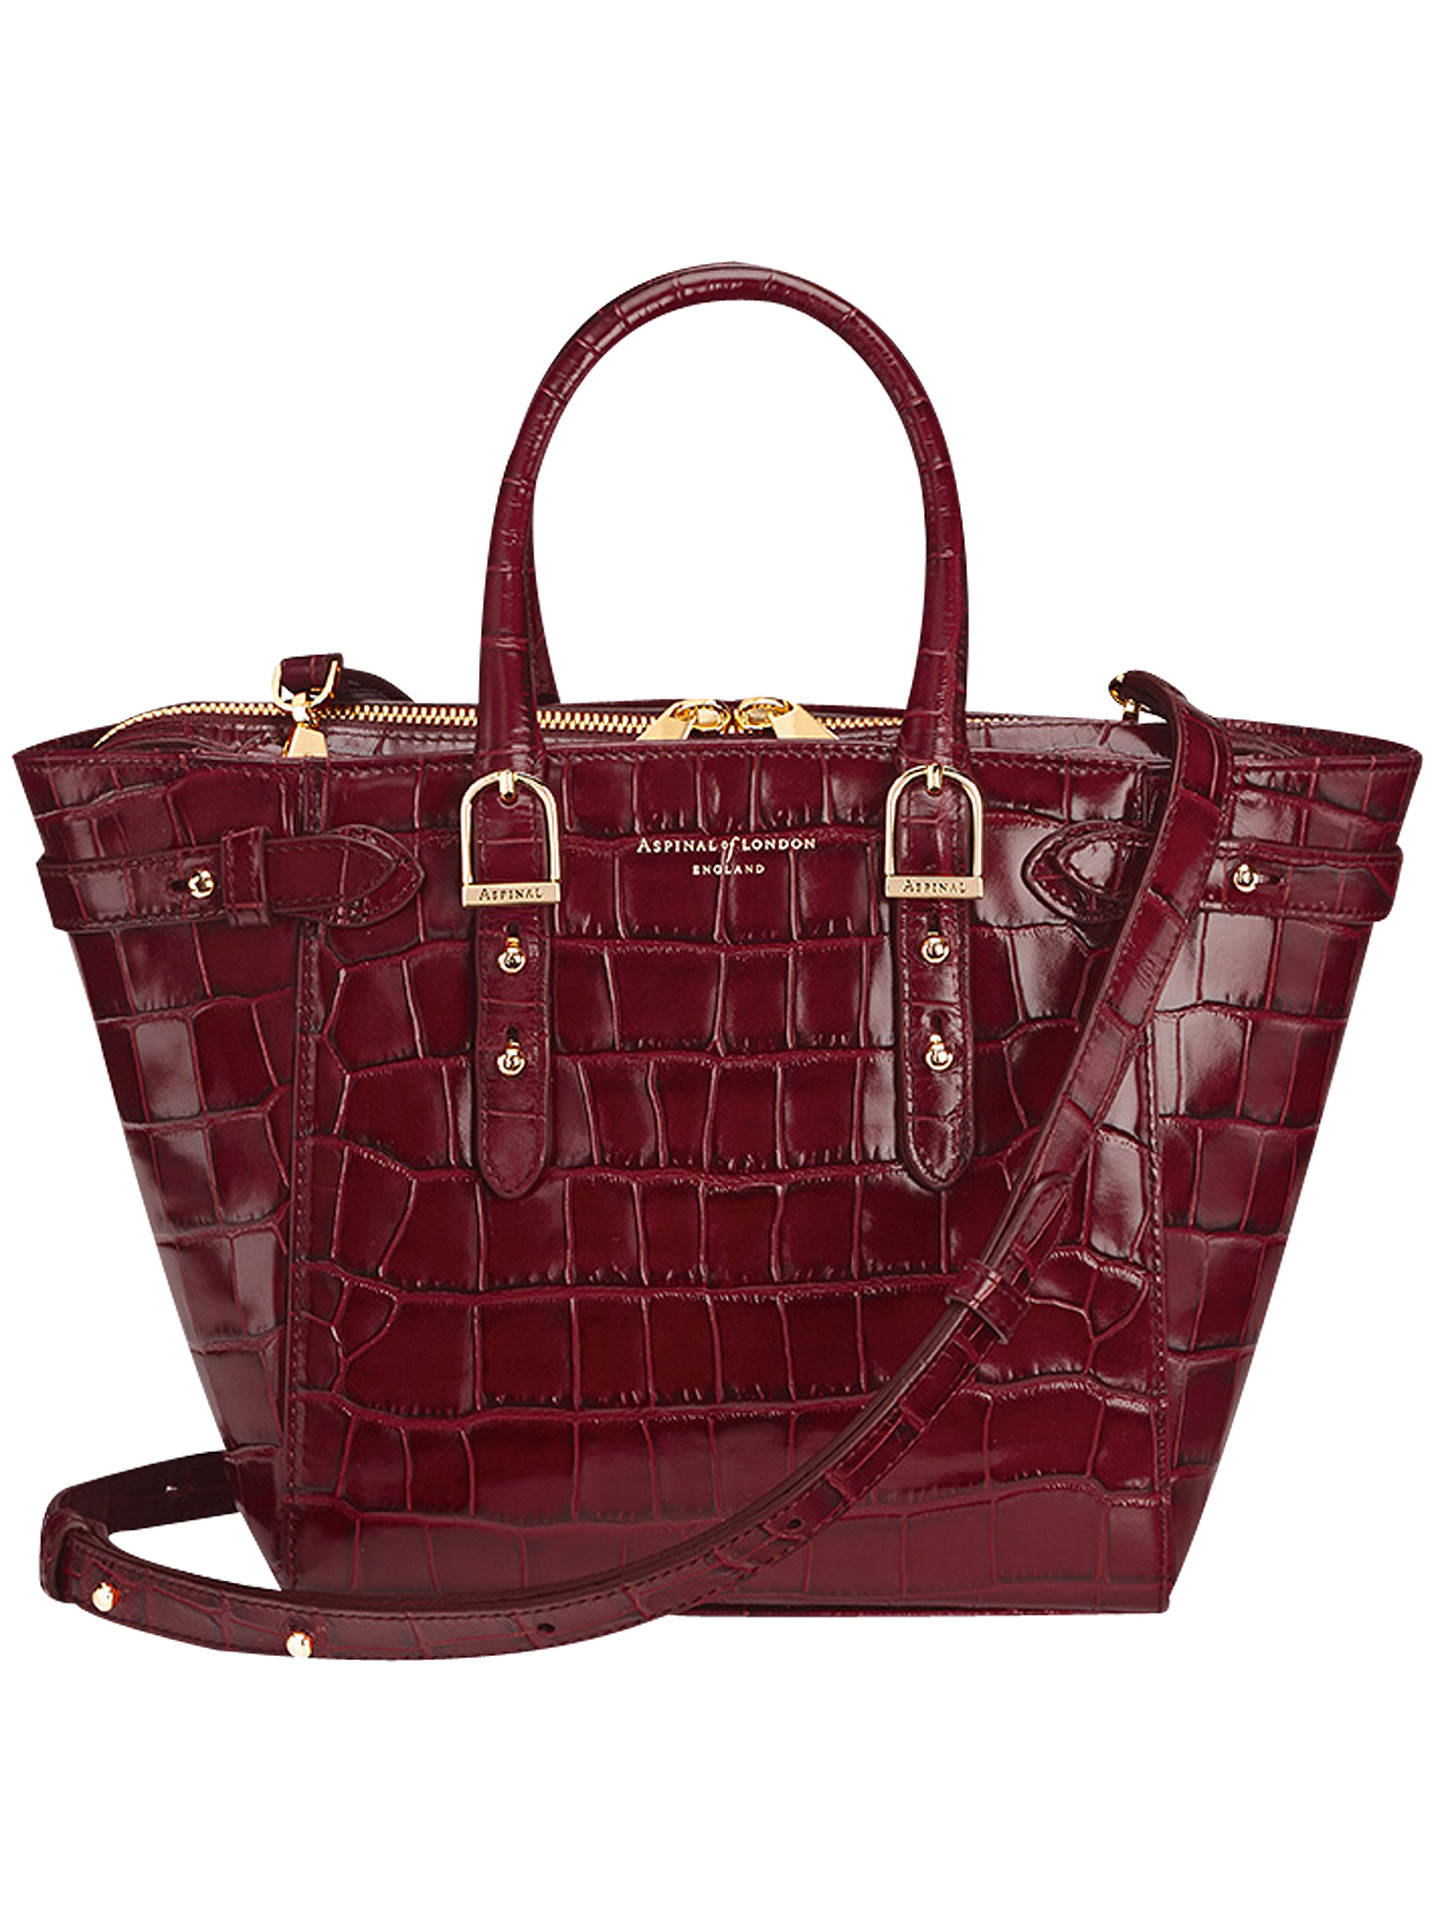 b9ceae15346dd Aspinal of London Marylebone Mini Leather Tote Bag at John Lewis ...